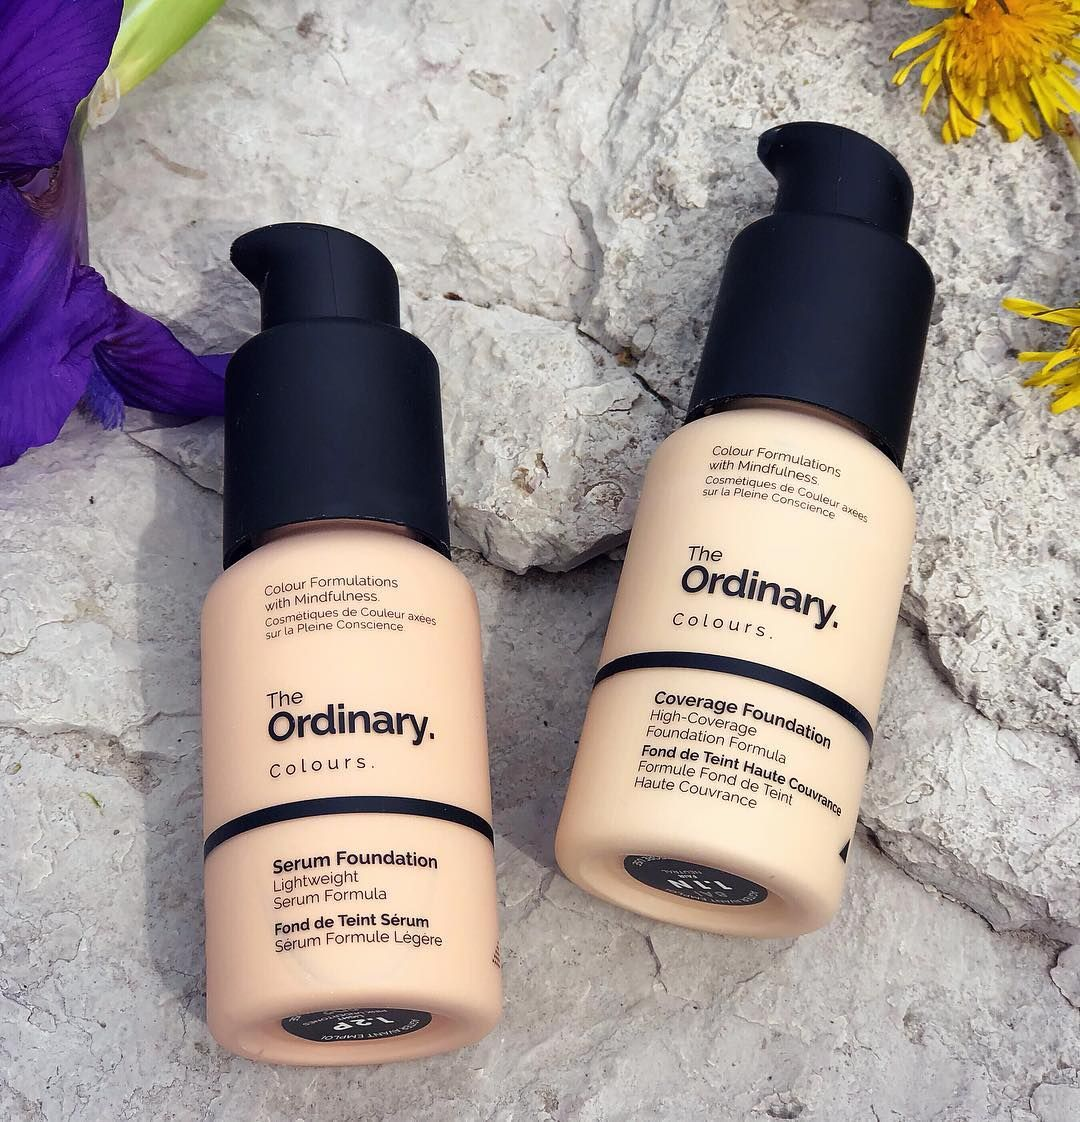 Have you tried the foundations from The Ordinary yet